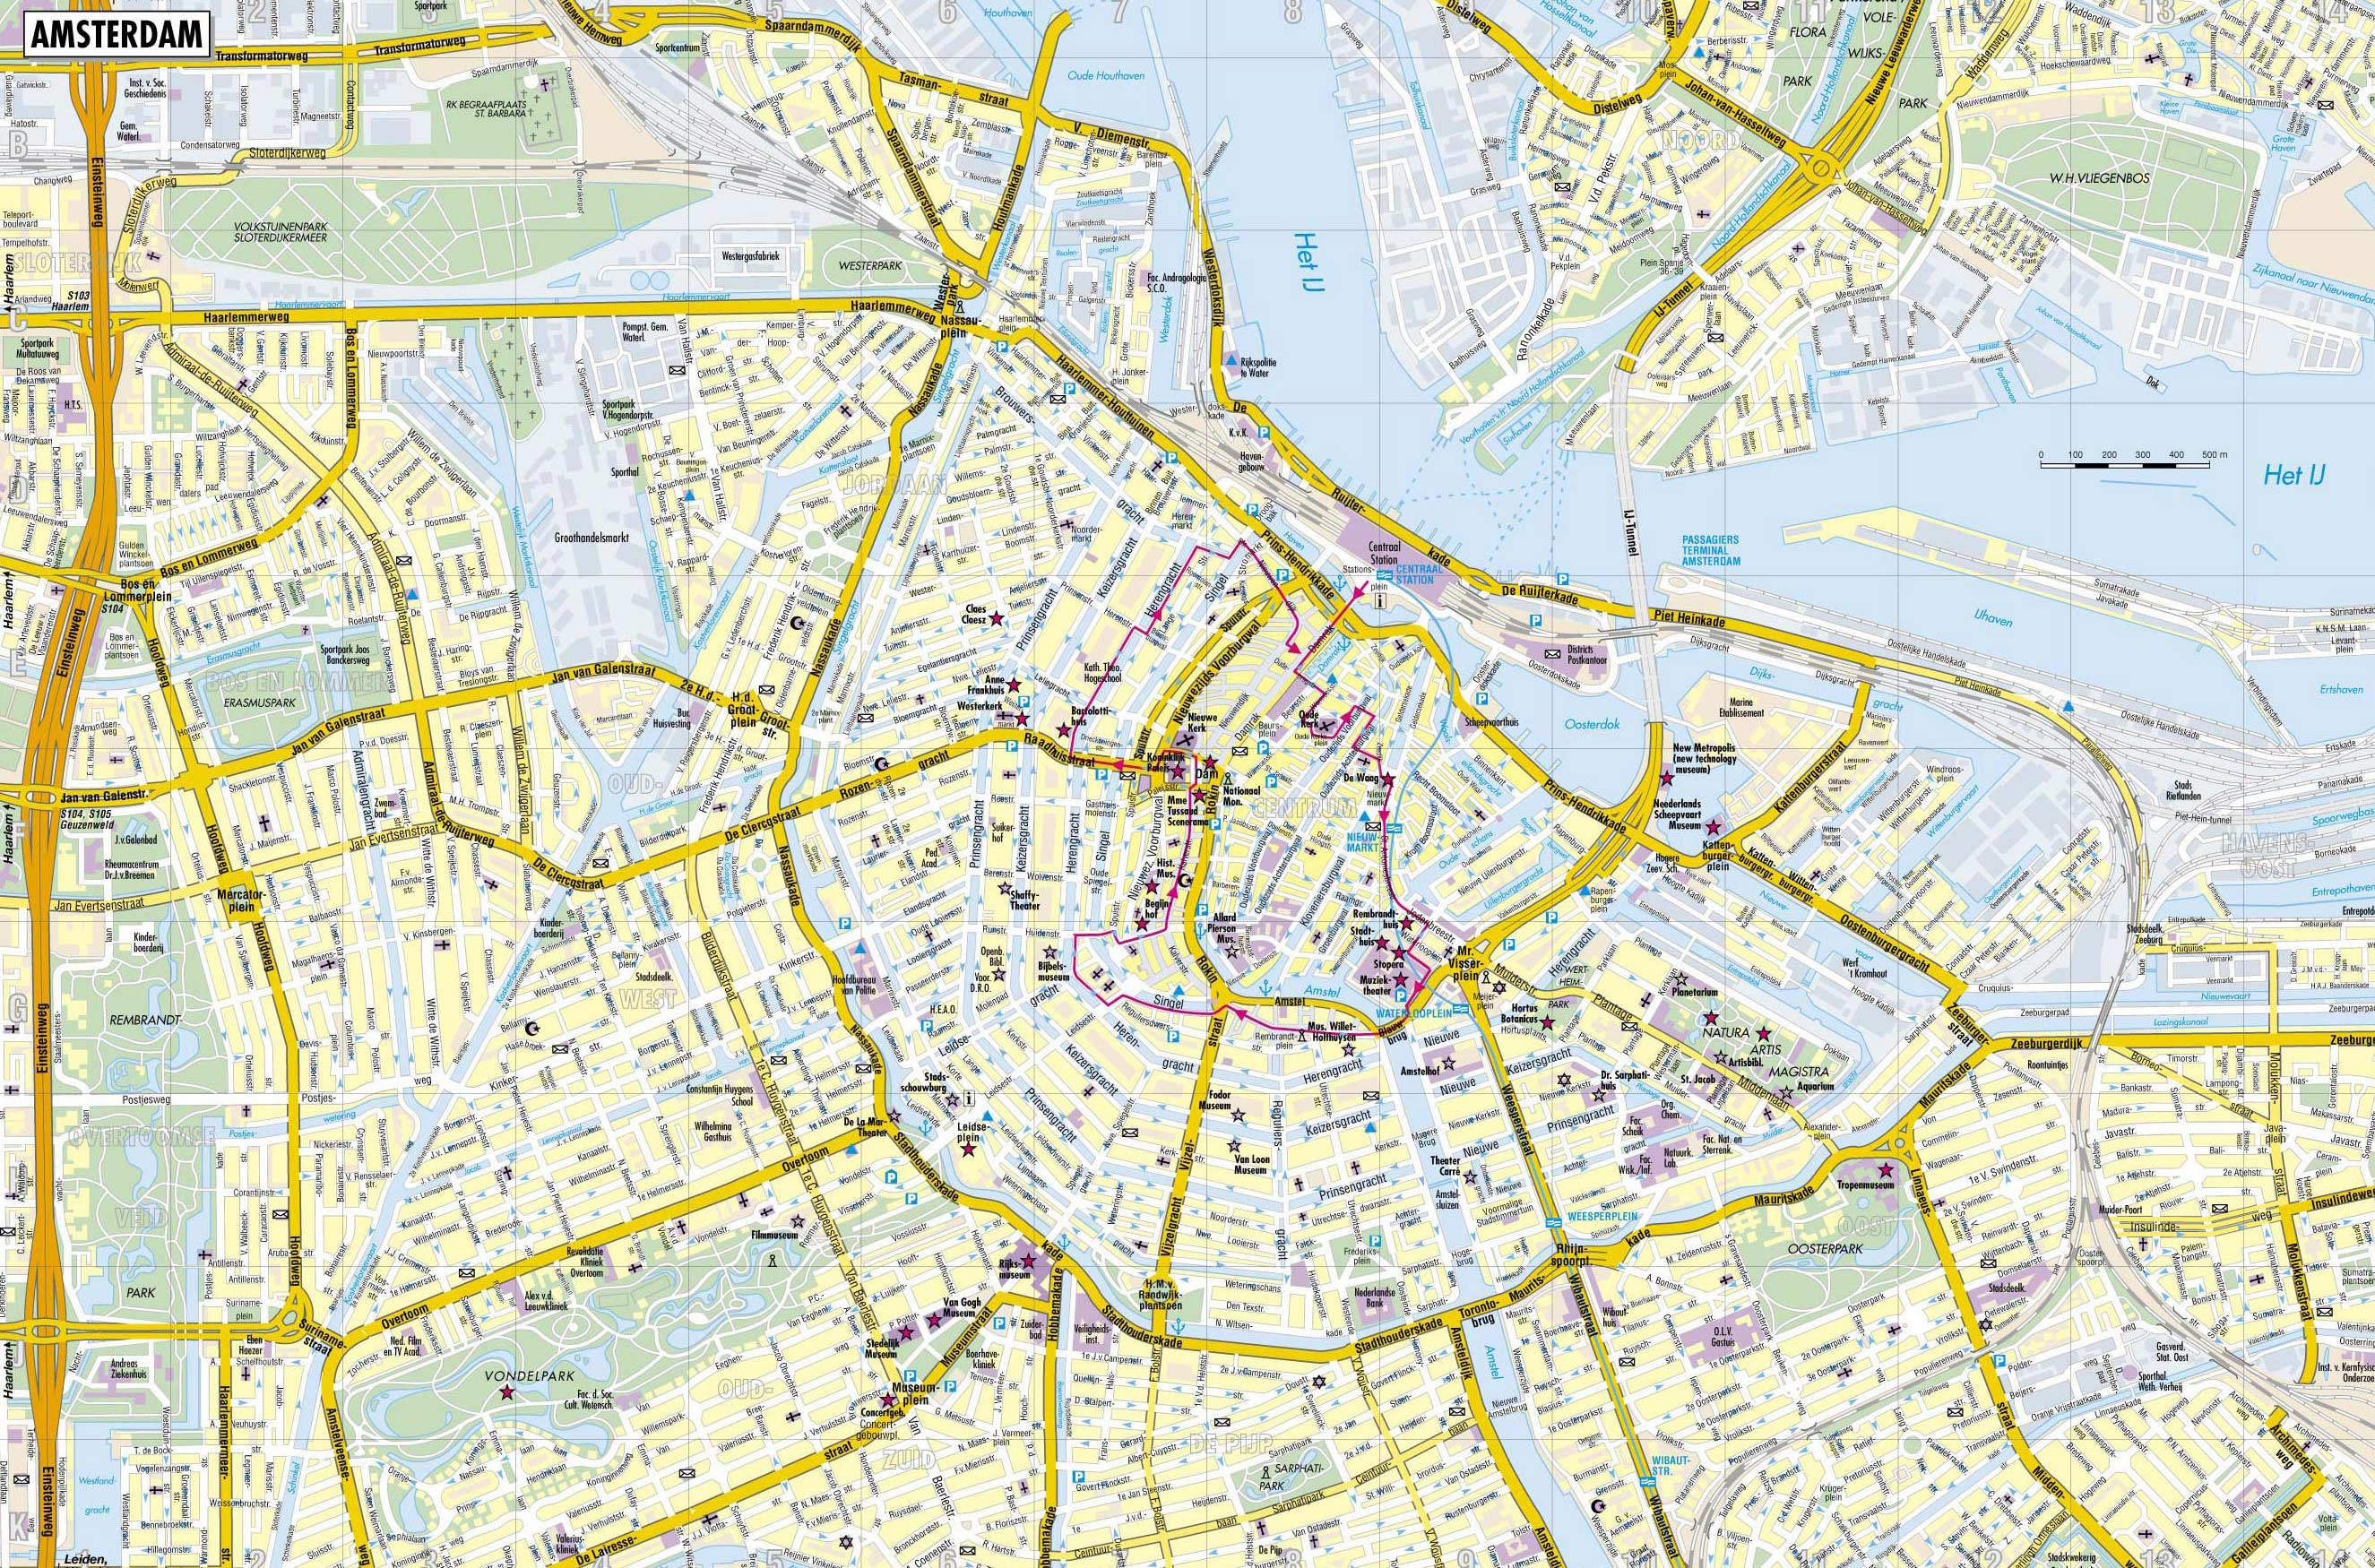 Amsterdam Map Amsterdam Netherlands mappery – Amsterdam Tourist Map